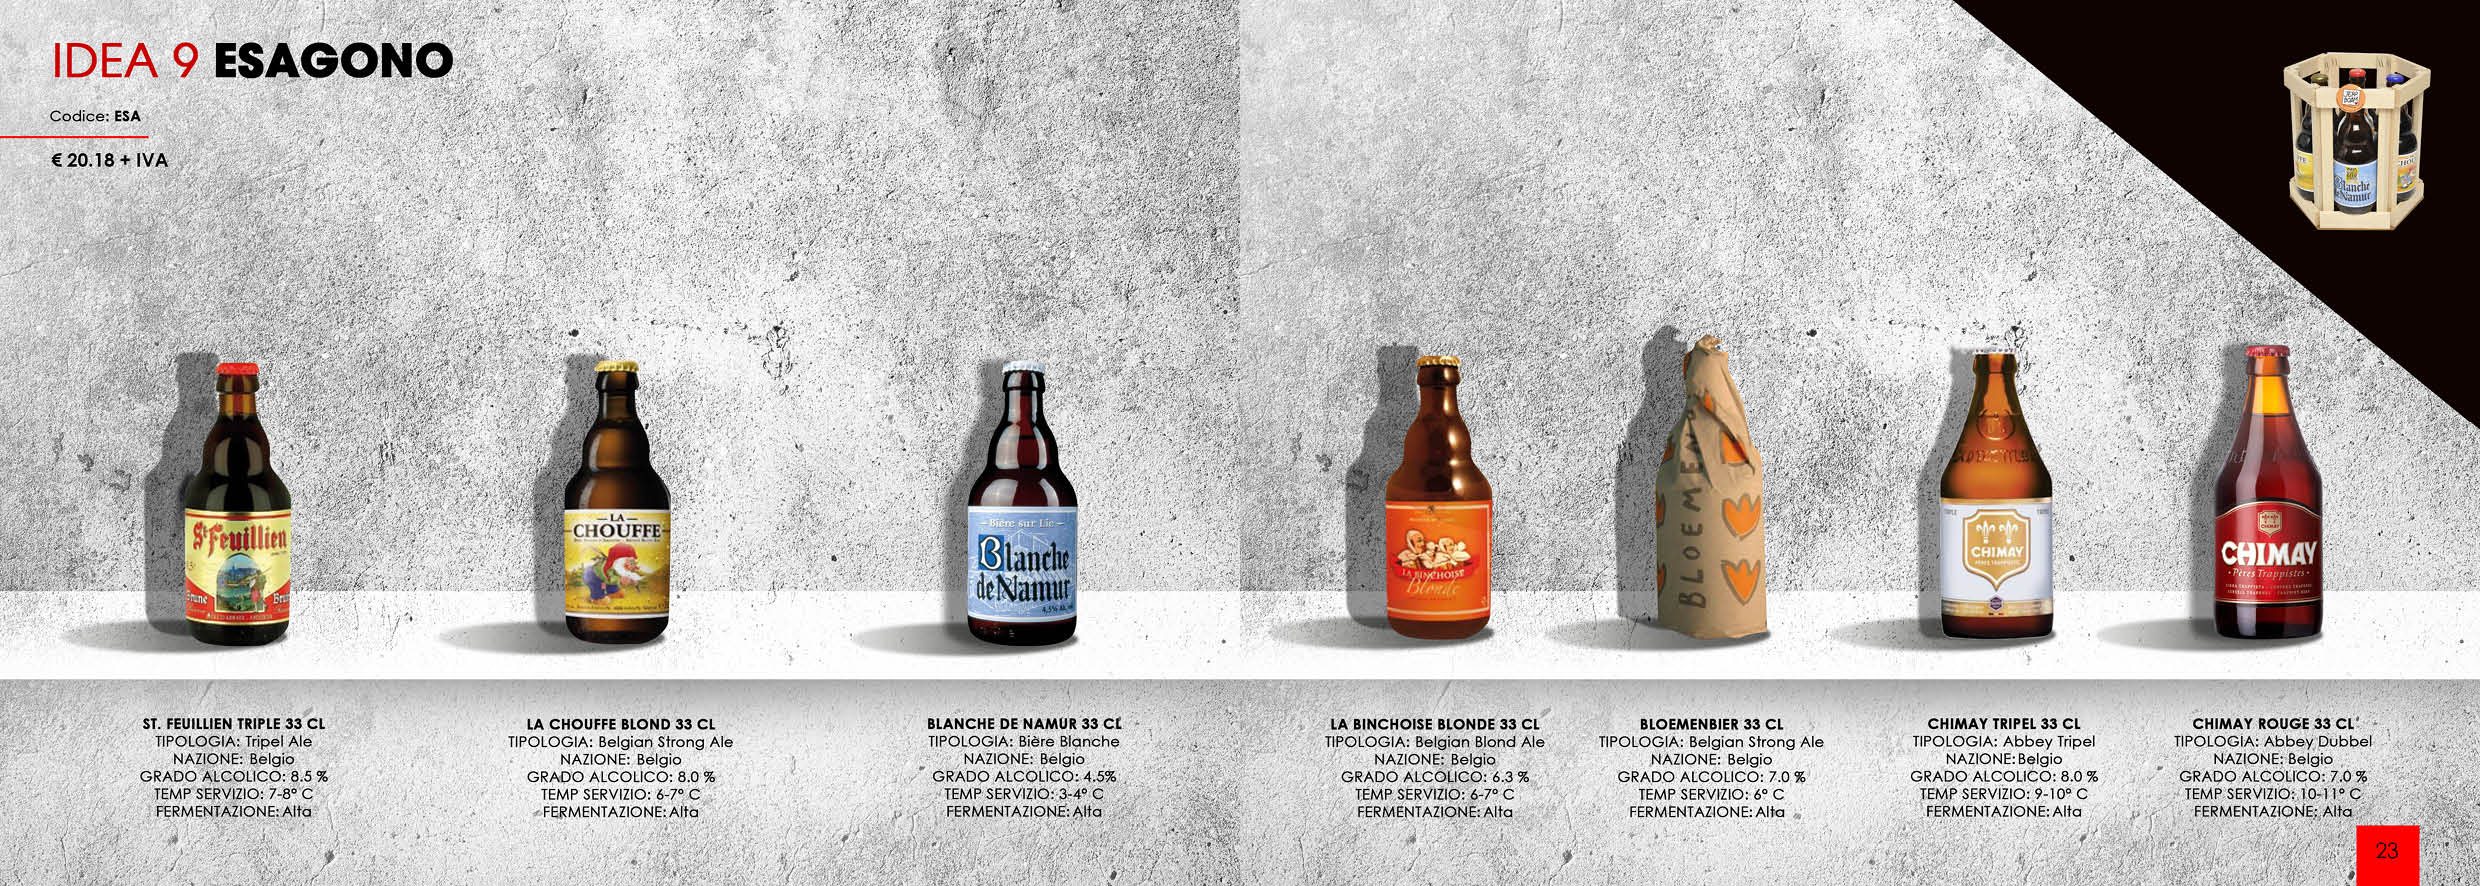 idea regalo esagono birra